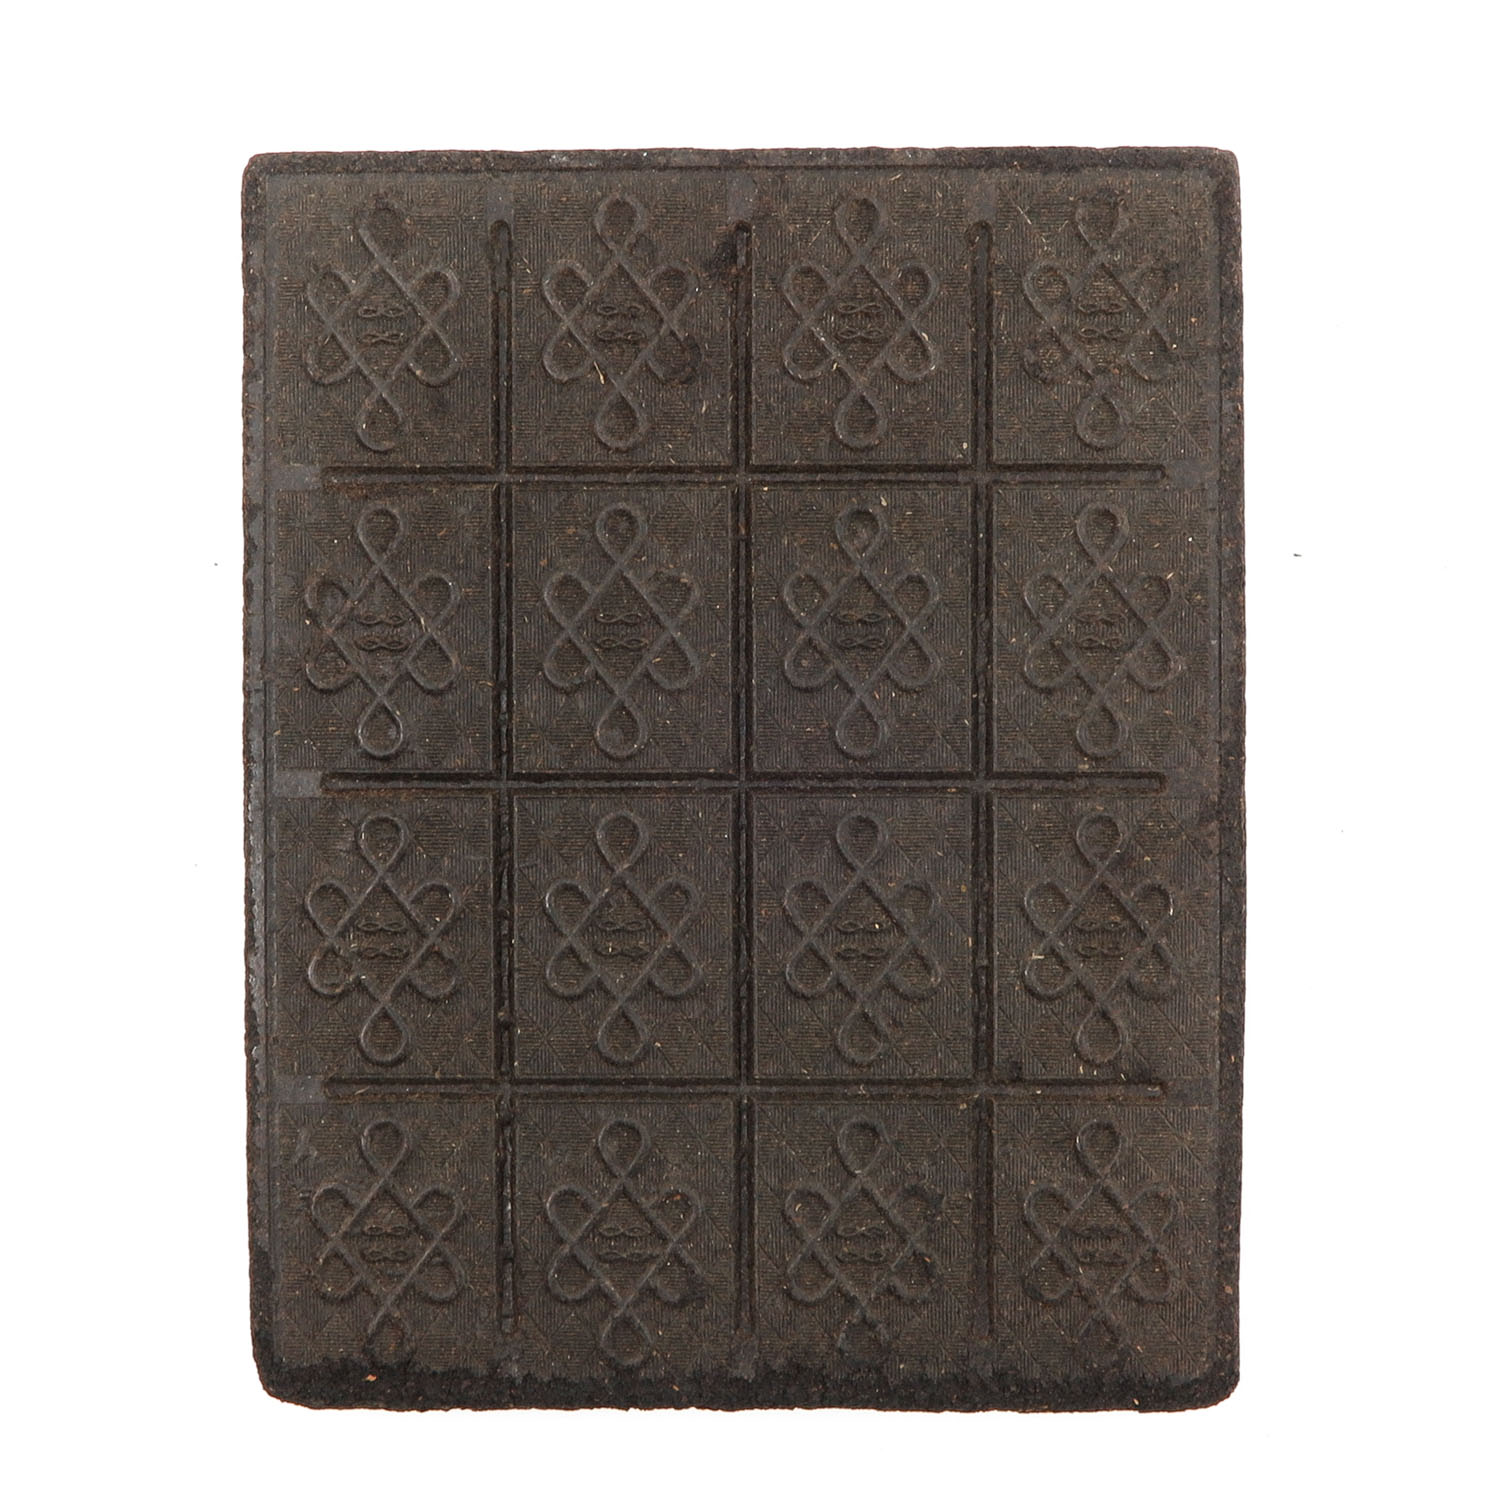 A Collection of 3 Tea Tiles - Image 6 of 10